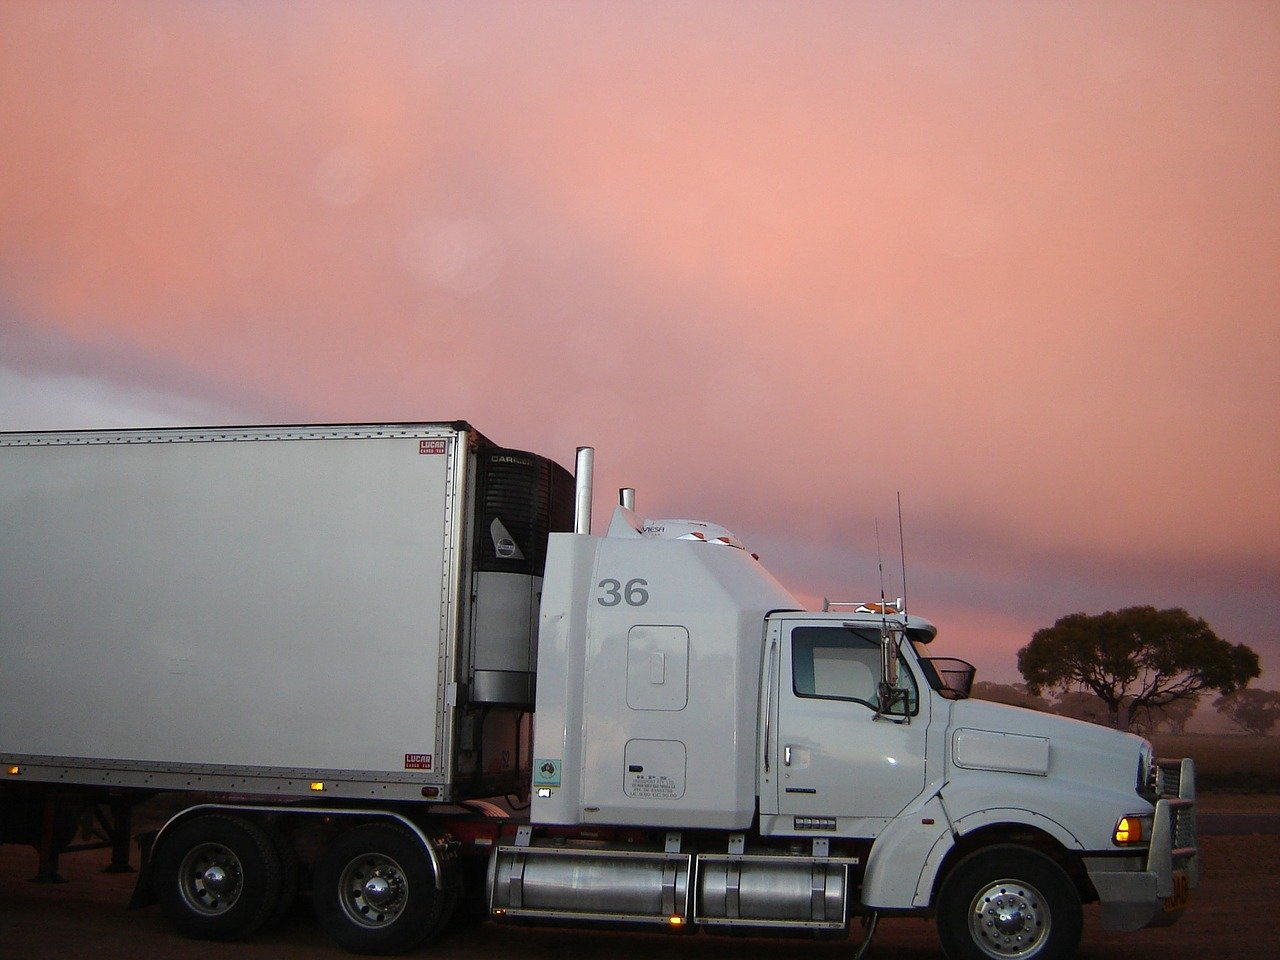 A white truck transporting cargo during sunset